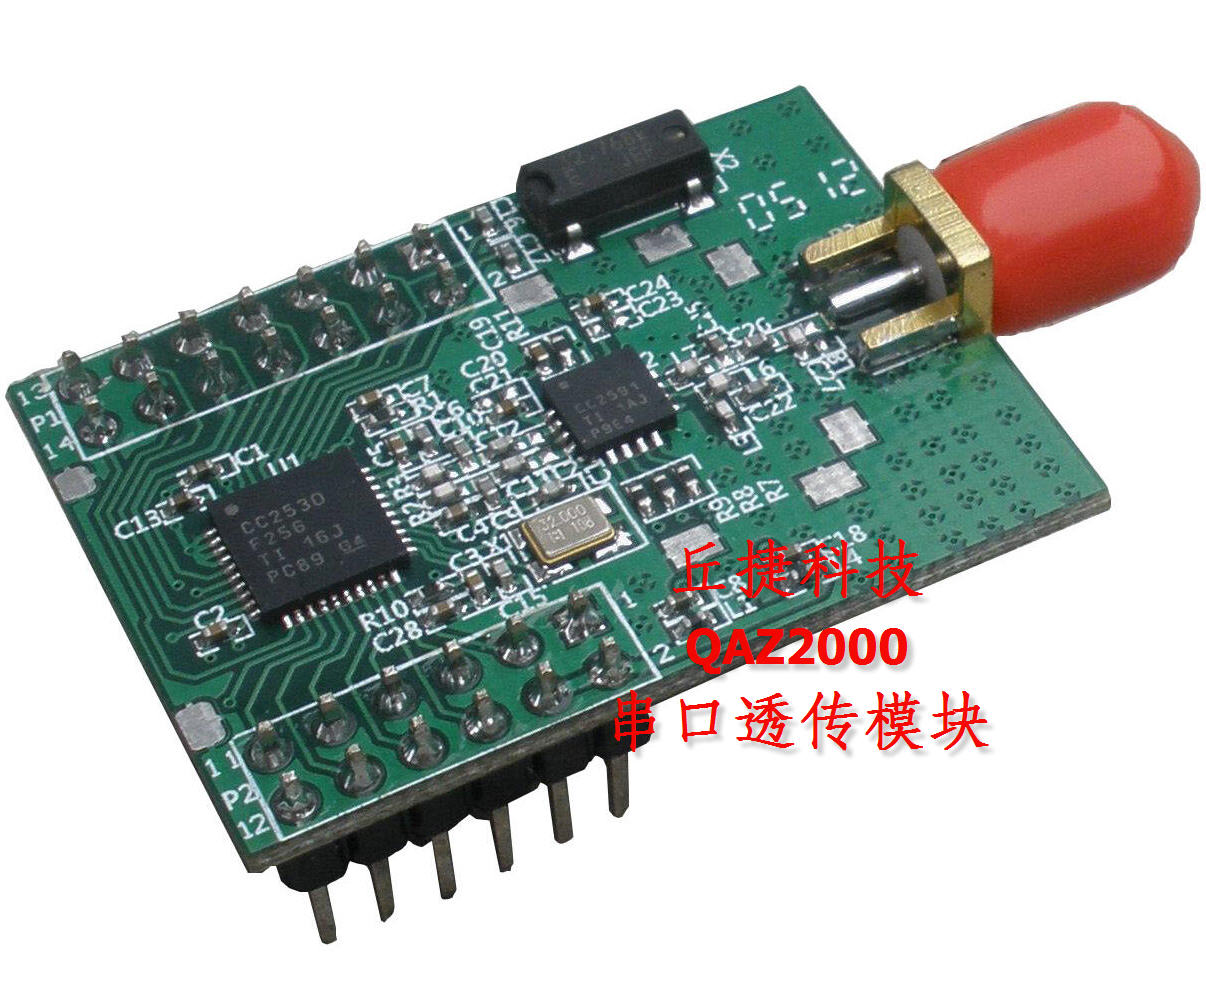 Serial to 1.6km ZigBee wireless module network transmission QAZ2000 CC2530 including antenna nrf24le1 wireless data transmission modules with wireless serial interface module dedicated test plate